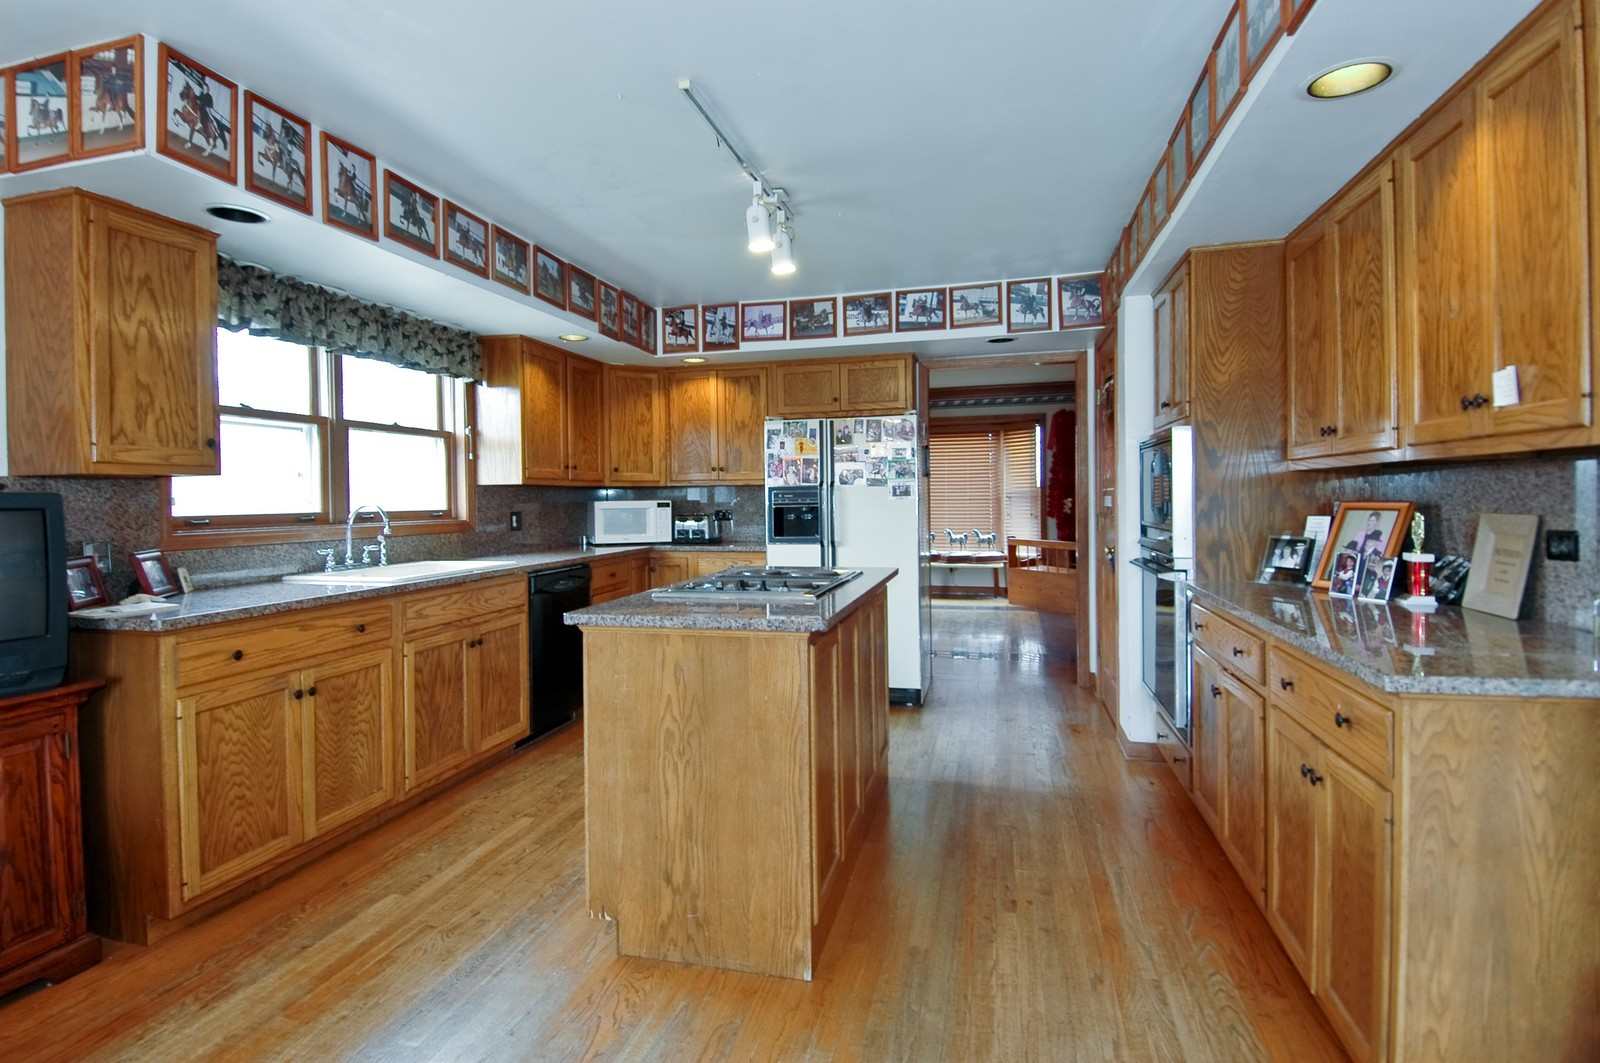 Real Estate Photography - 9006 W Wonder Lake Rd, Woodstock, IL, 60098 - Kitchen